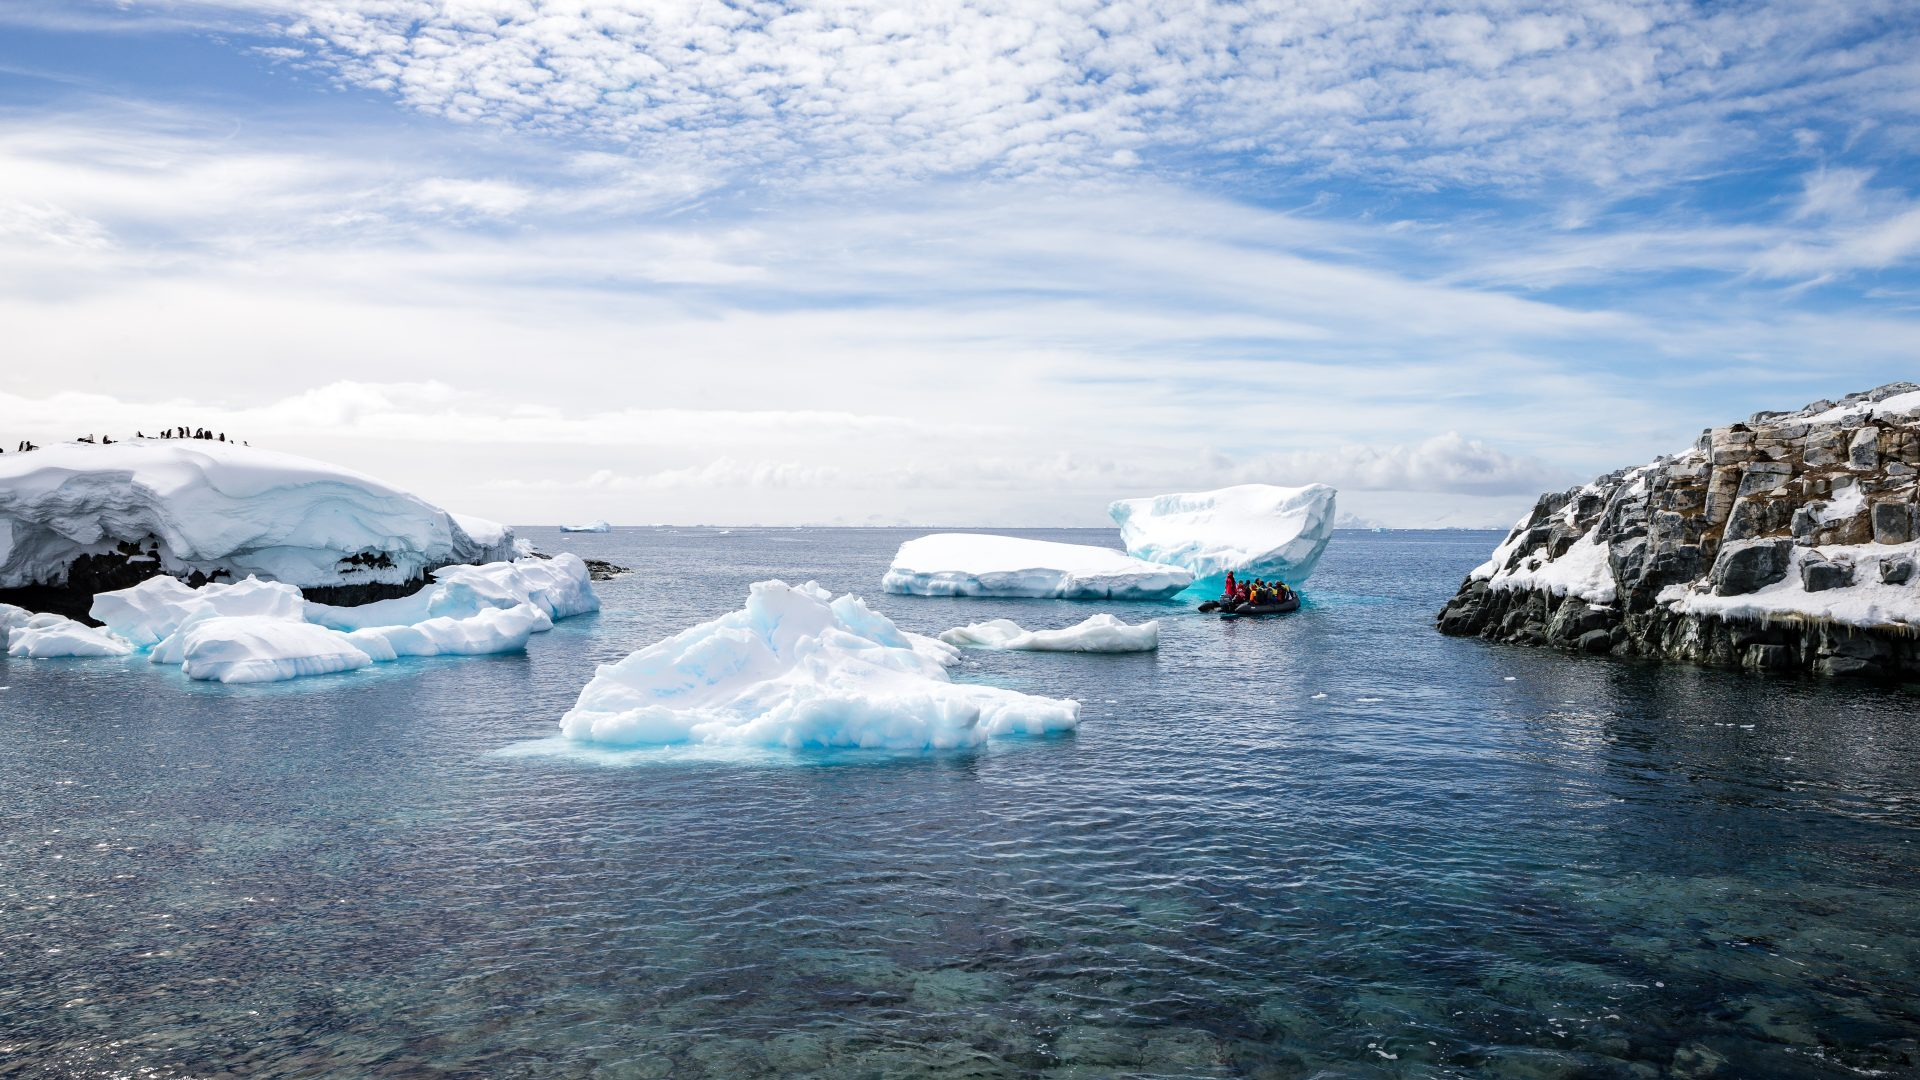 Zodiacs approach the icebergs in Antarctica.